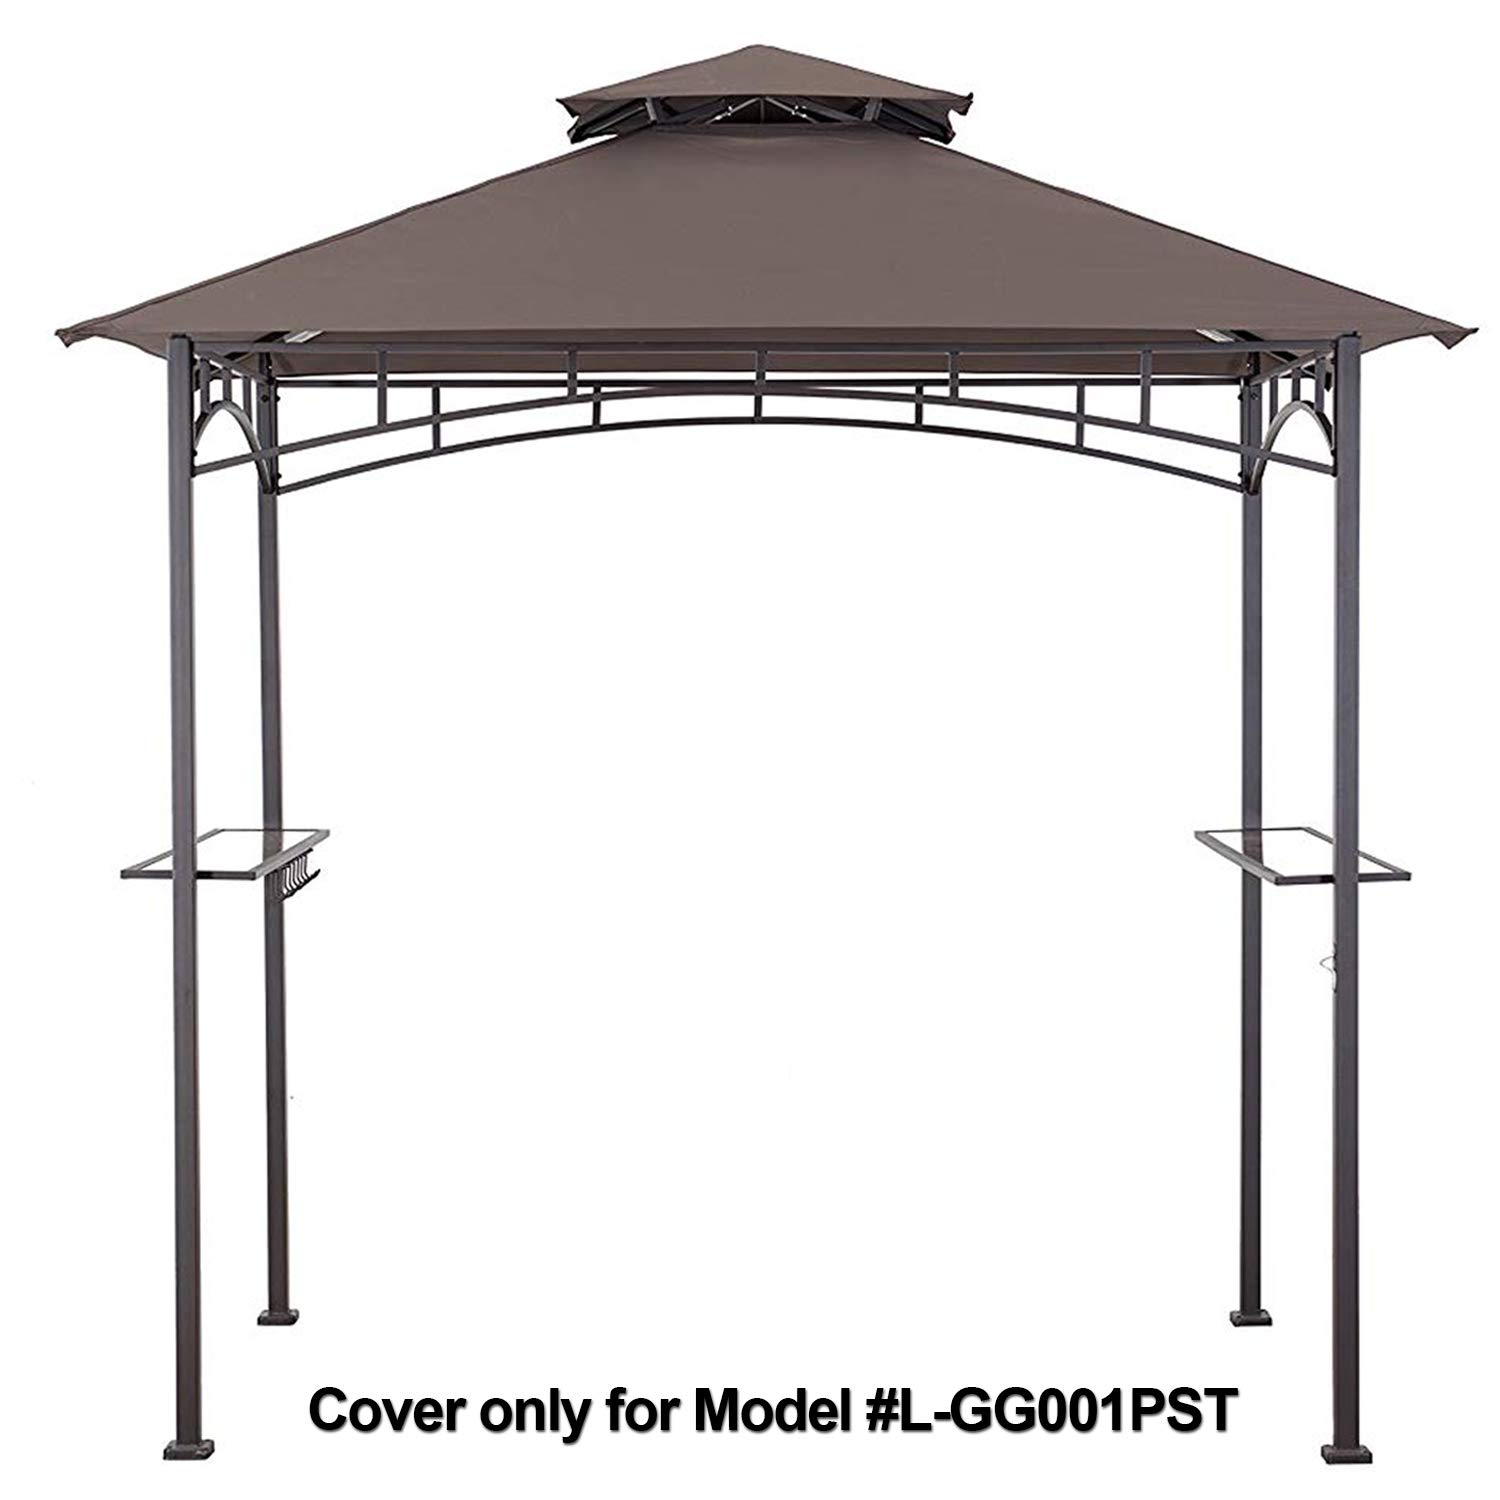 MasterCanopy Grill Gazebo Shelter Replacement Canopy Cover ONLY FIT for Gazebo Model L-GG001PST-F Brown